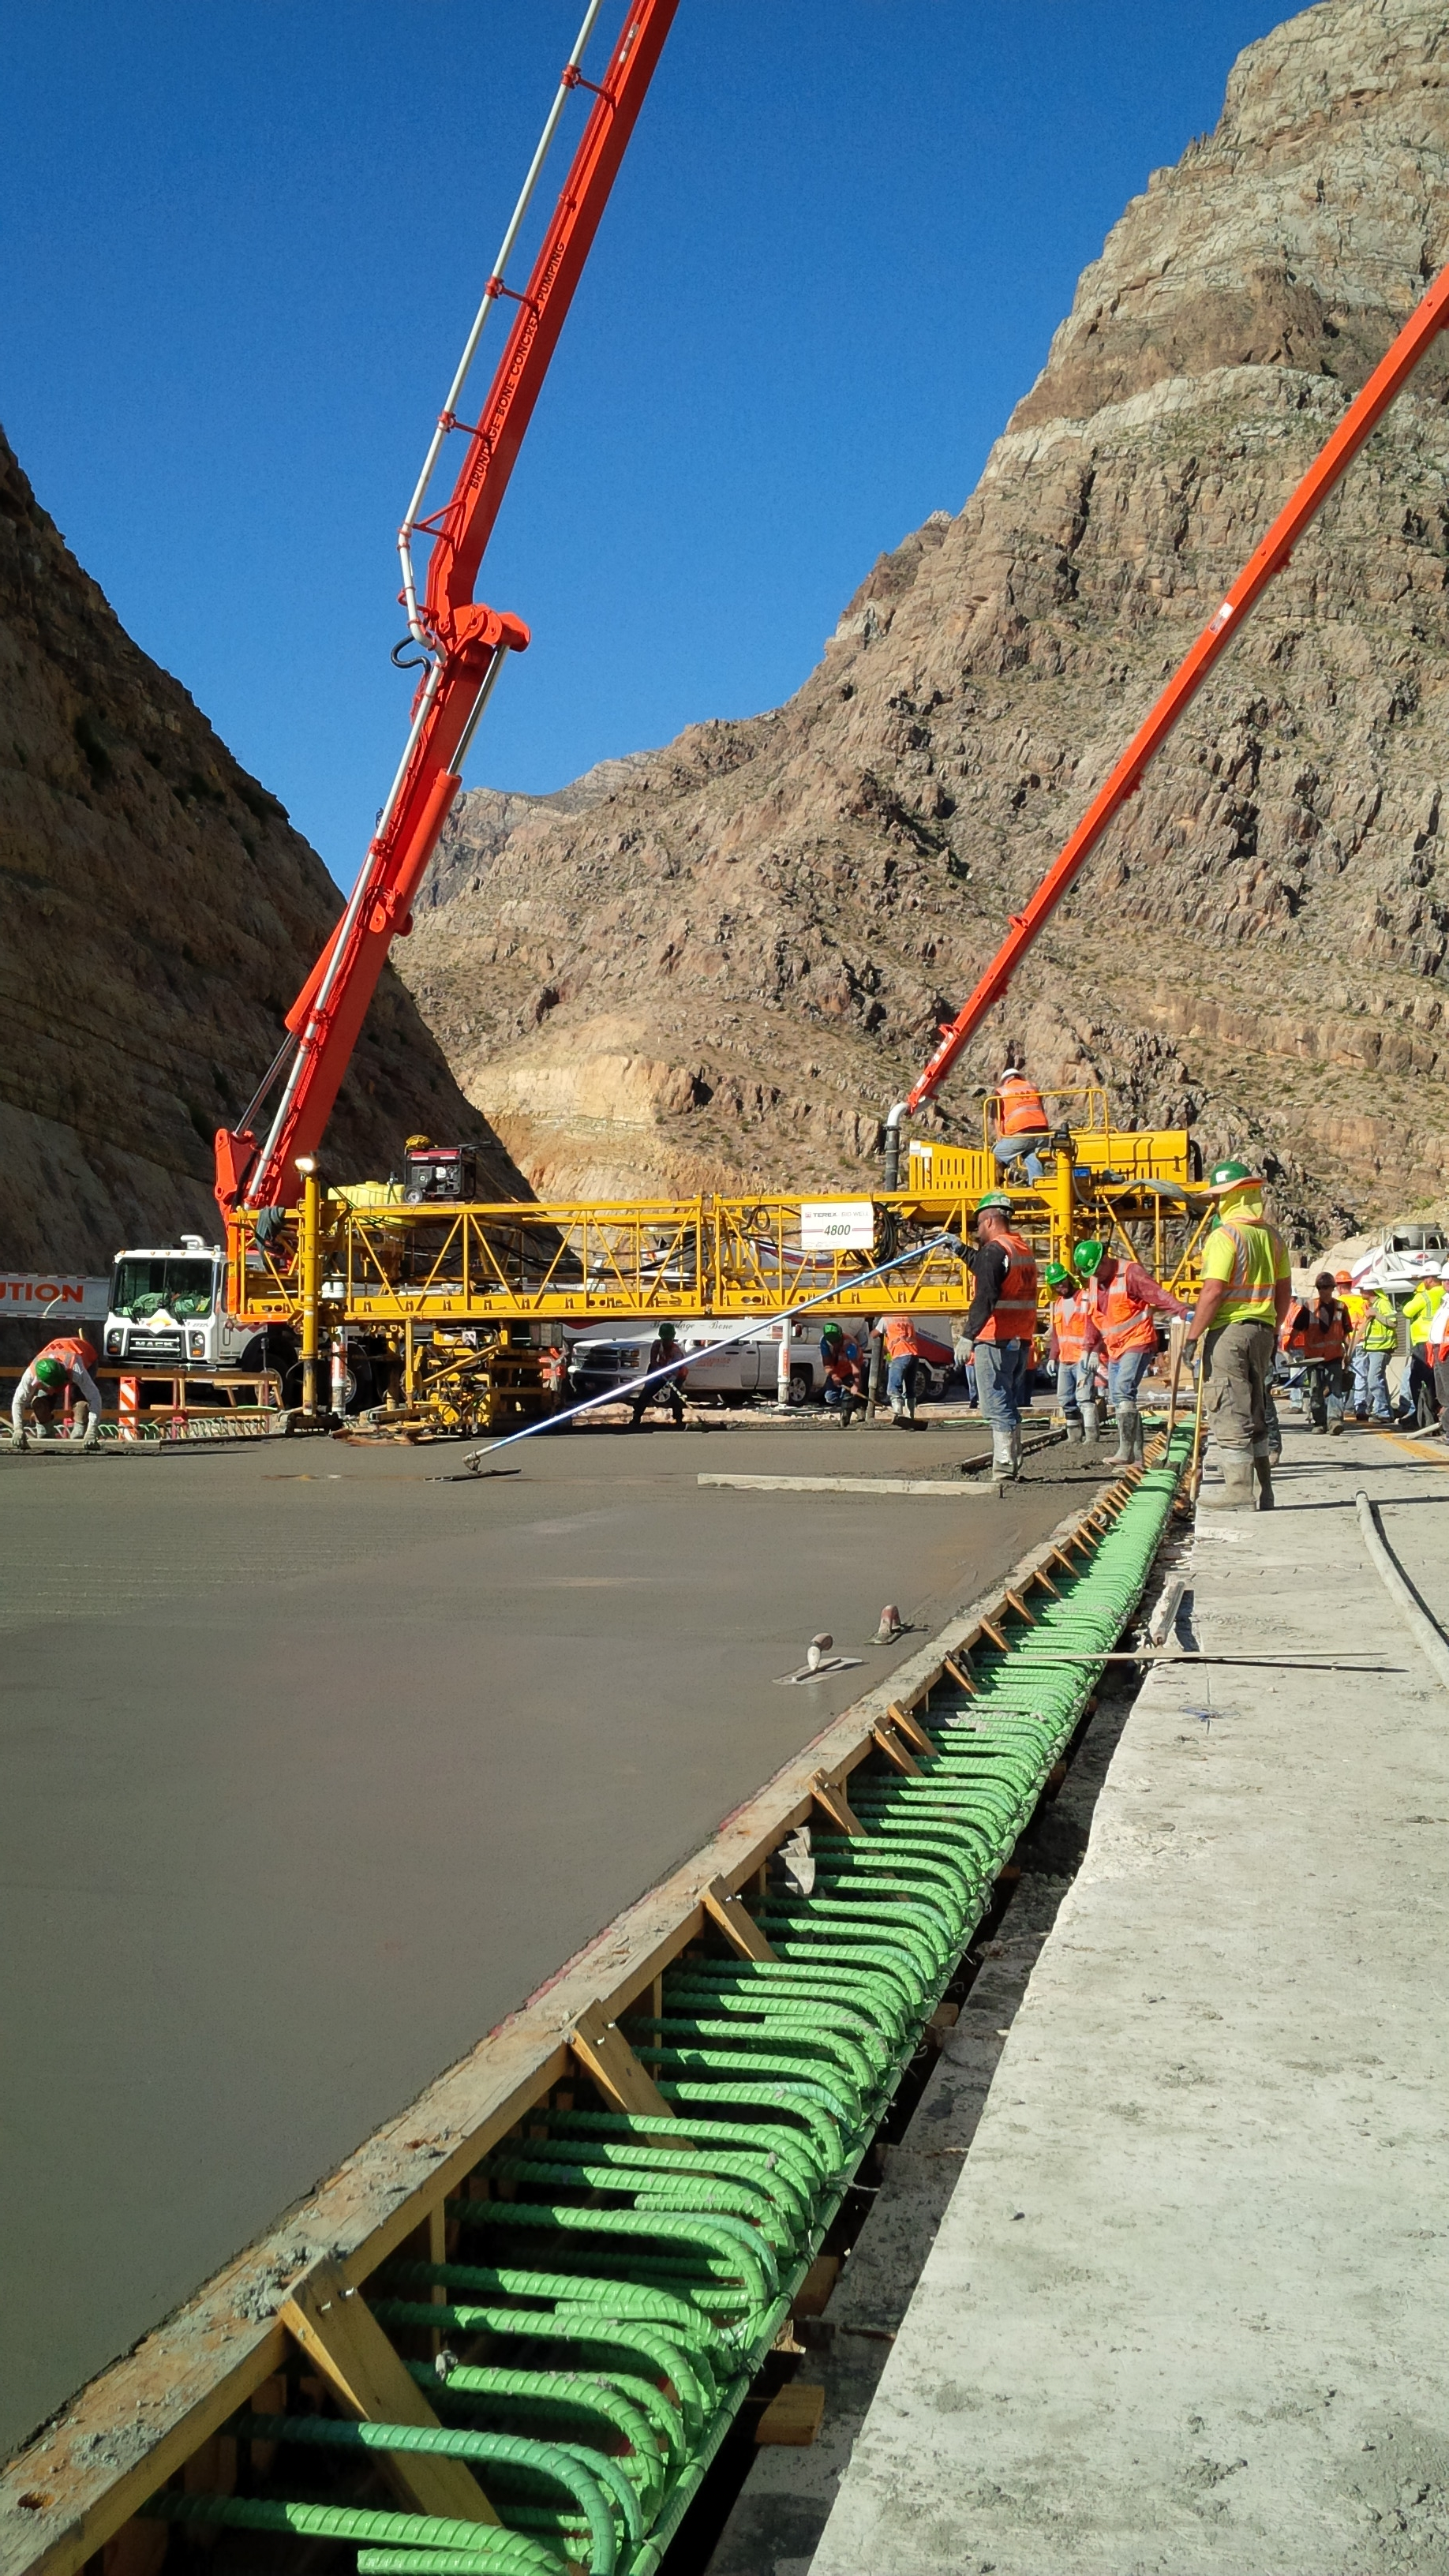 Concrete deck being completed on the Virgin River Gorge Bridge No. 6 on I-15, Mojave County, Arizona, June 1, 2015 | Photo courtesy of ADOT, St. George News